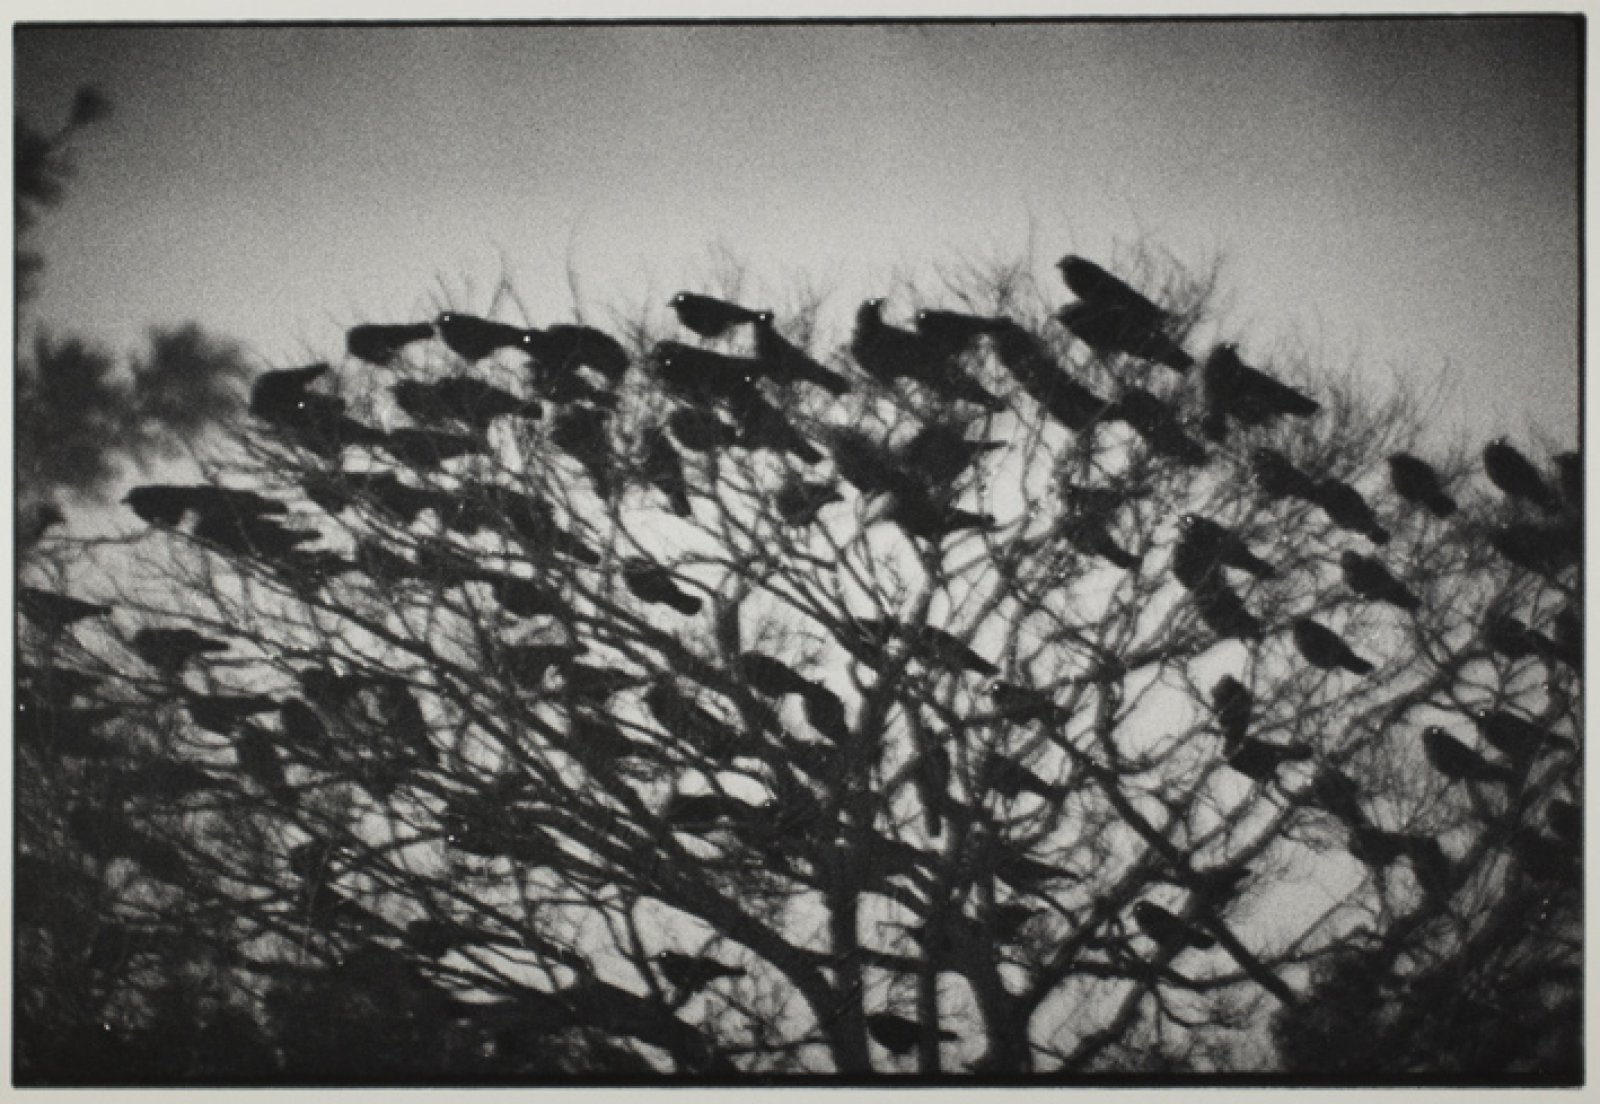 Kanazawa 1977, from the series Ravens © Masahisa Fukase Archives